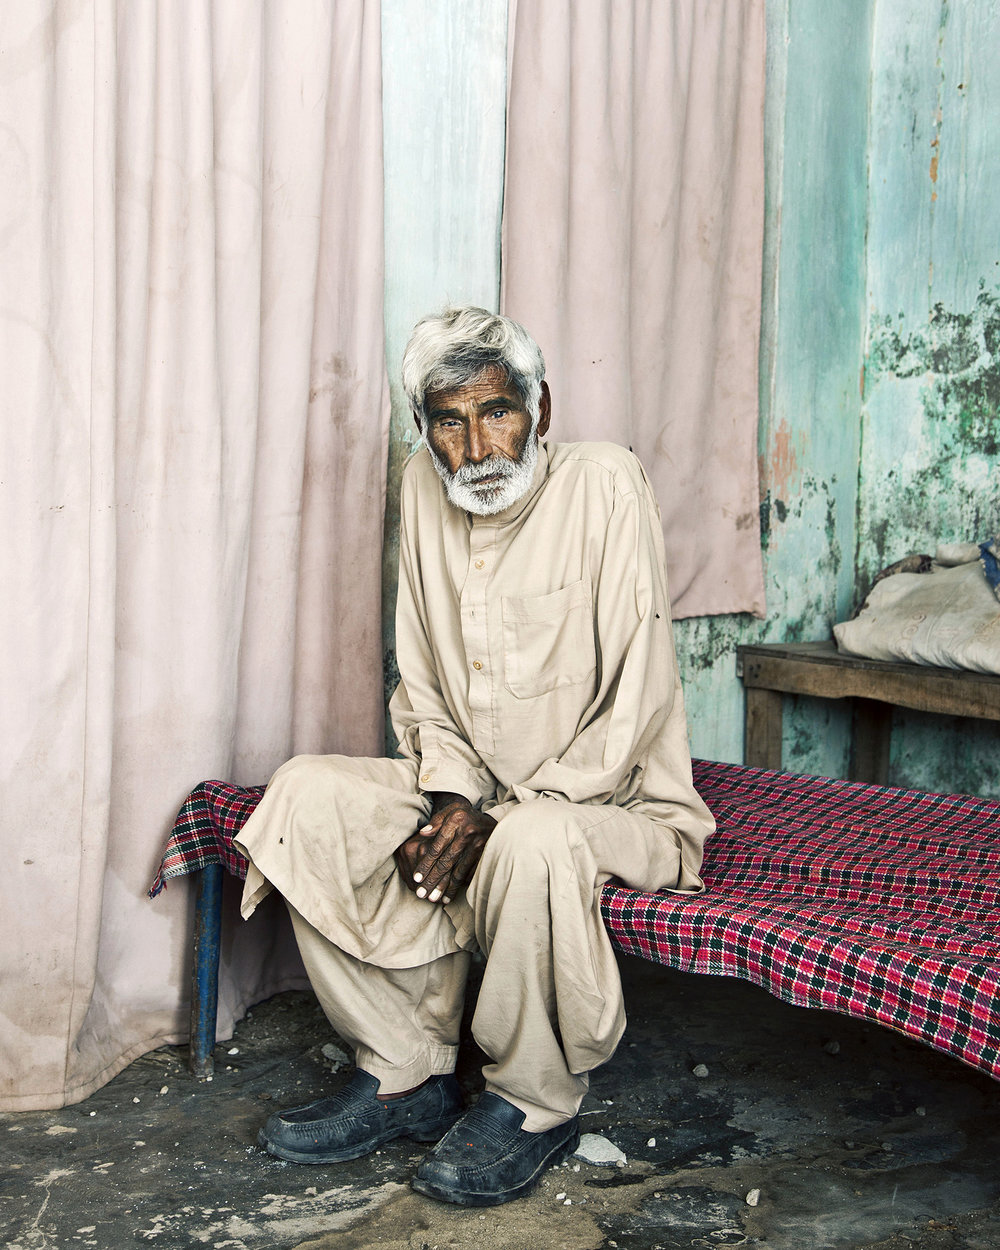 The Father, Pakistan by Anna Hiux